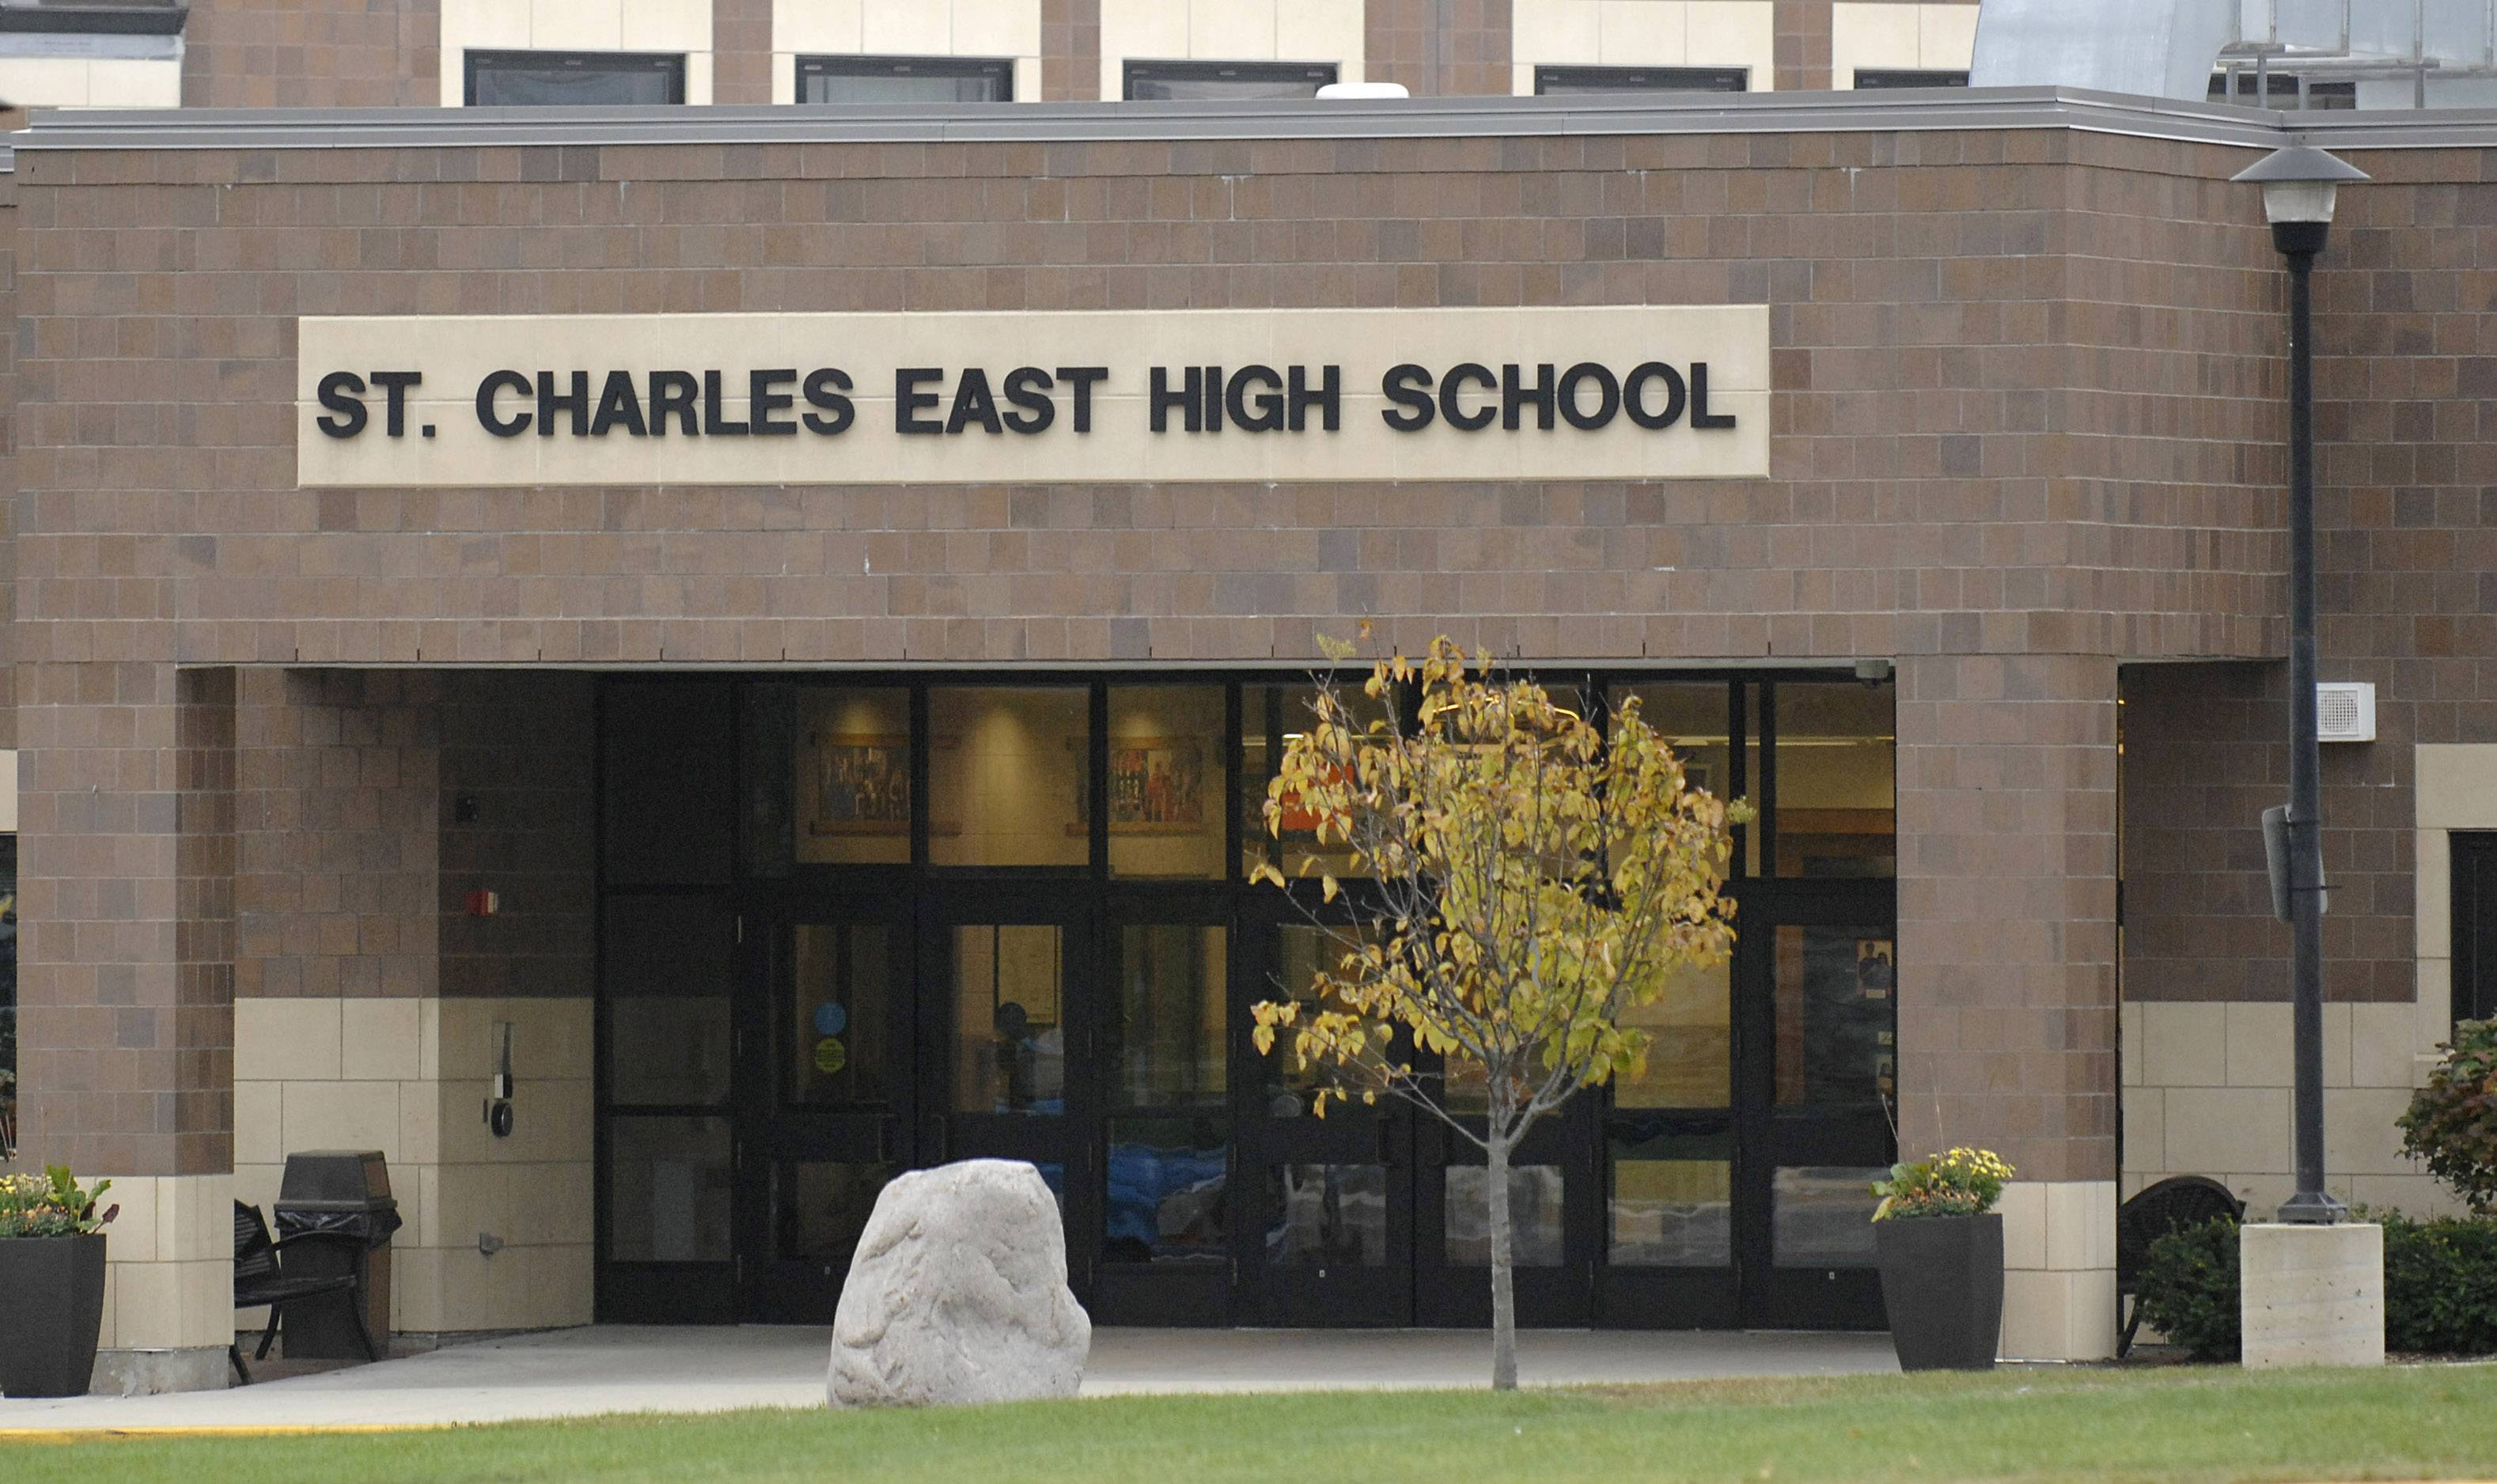 Classes were canceled Tuesday at St. Charles East High School due to an abnormally high number of absences as a widespread stomach virus hit hundreds of students. Officials said they will make a determination late Tuesday whether to resume classes Wednesday.